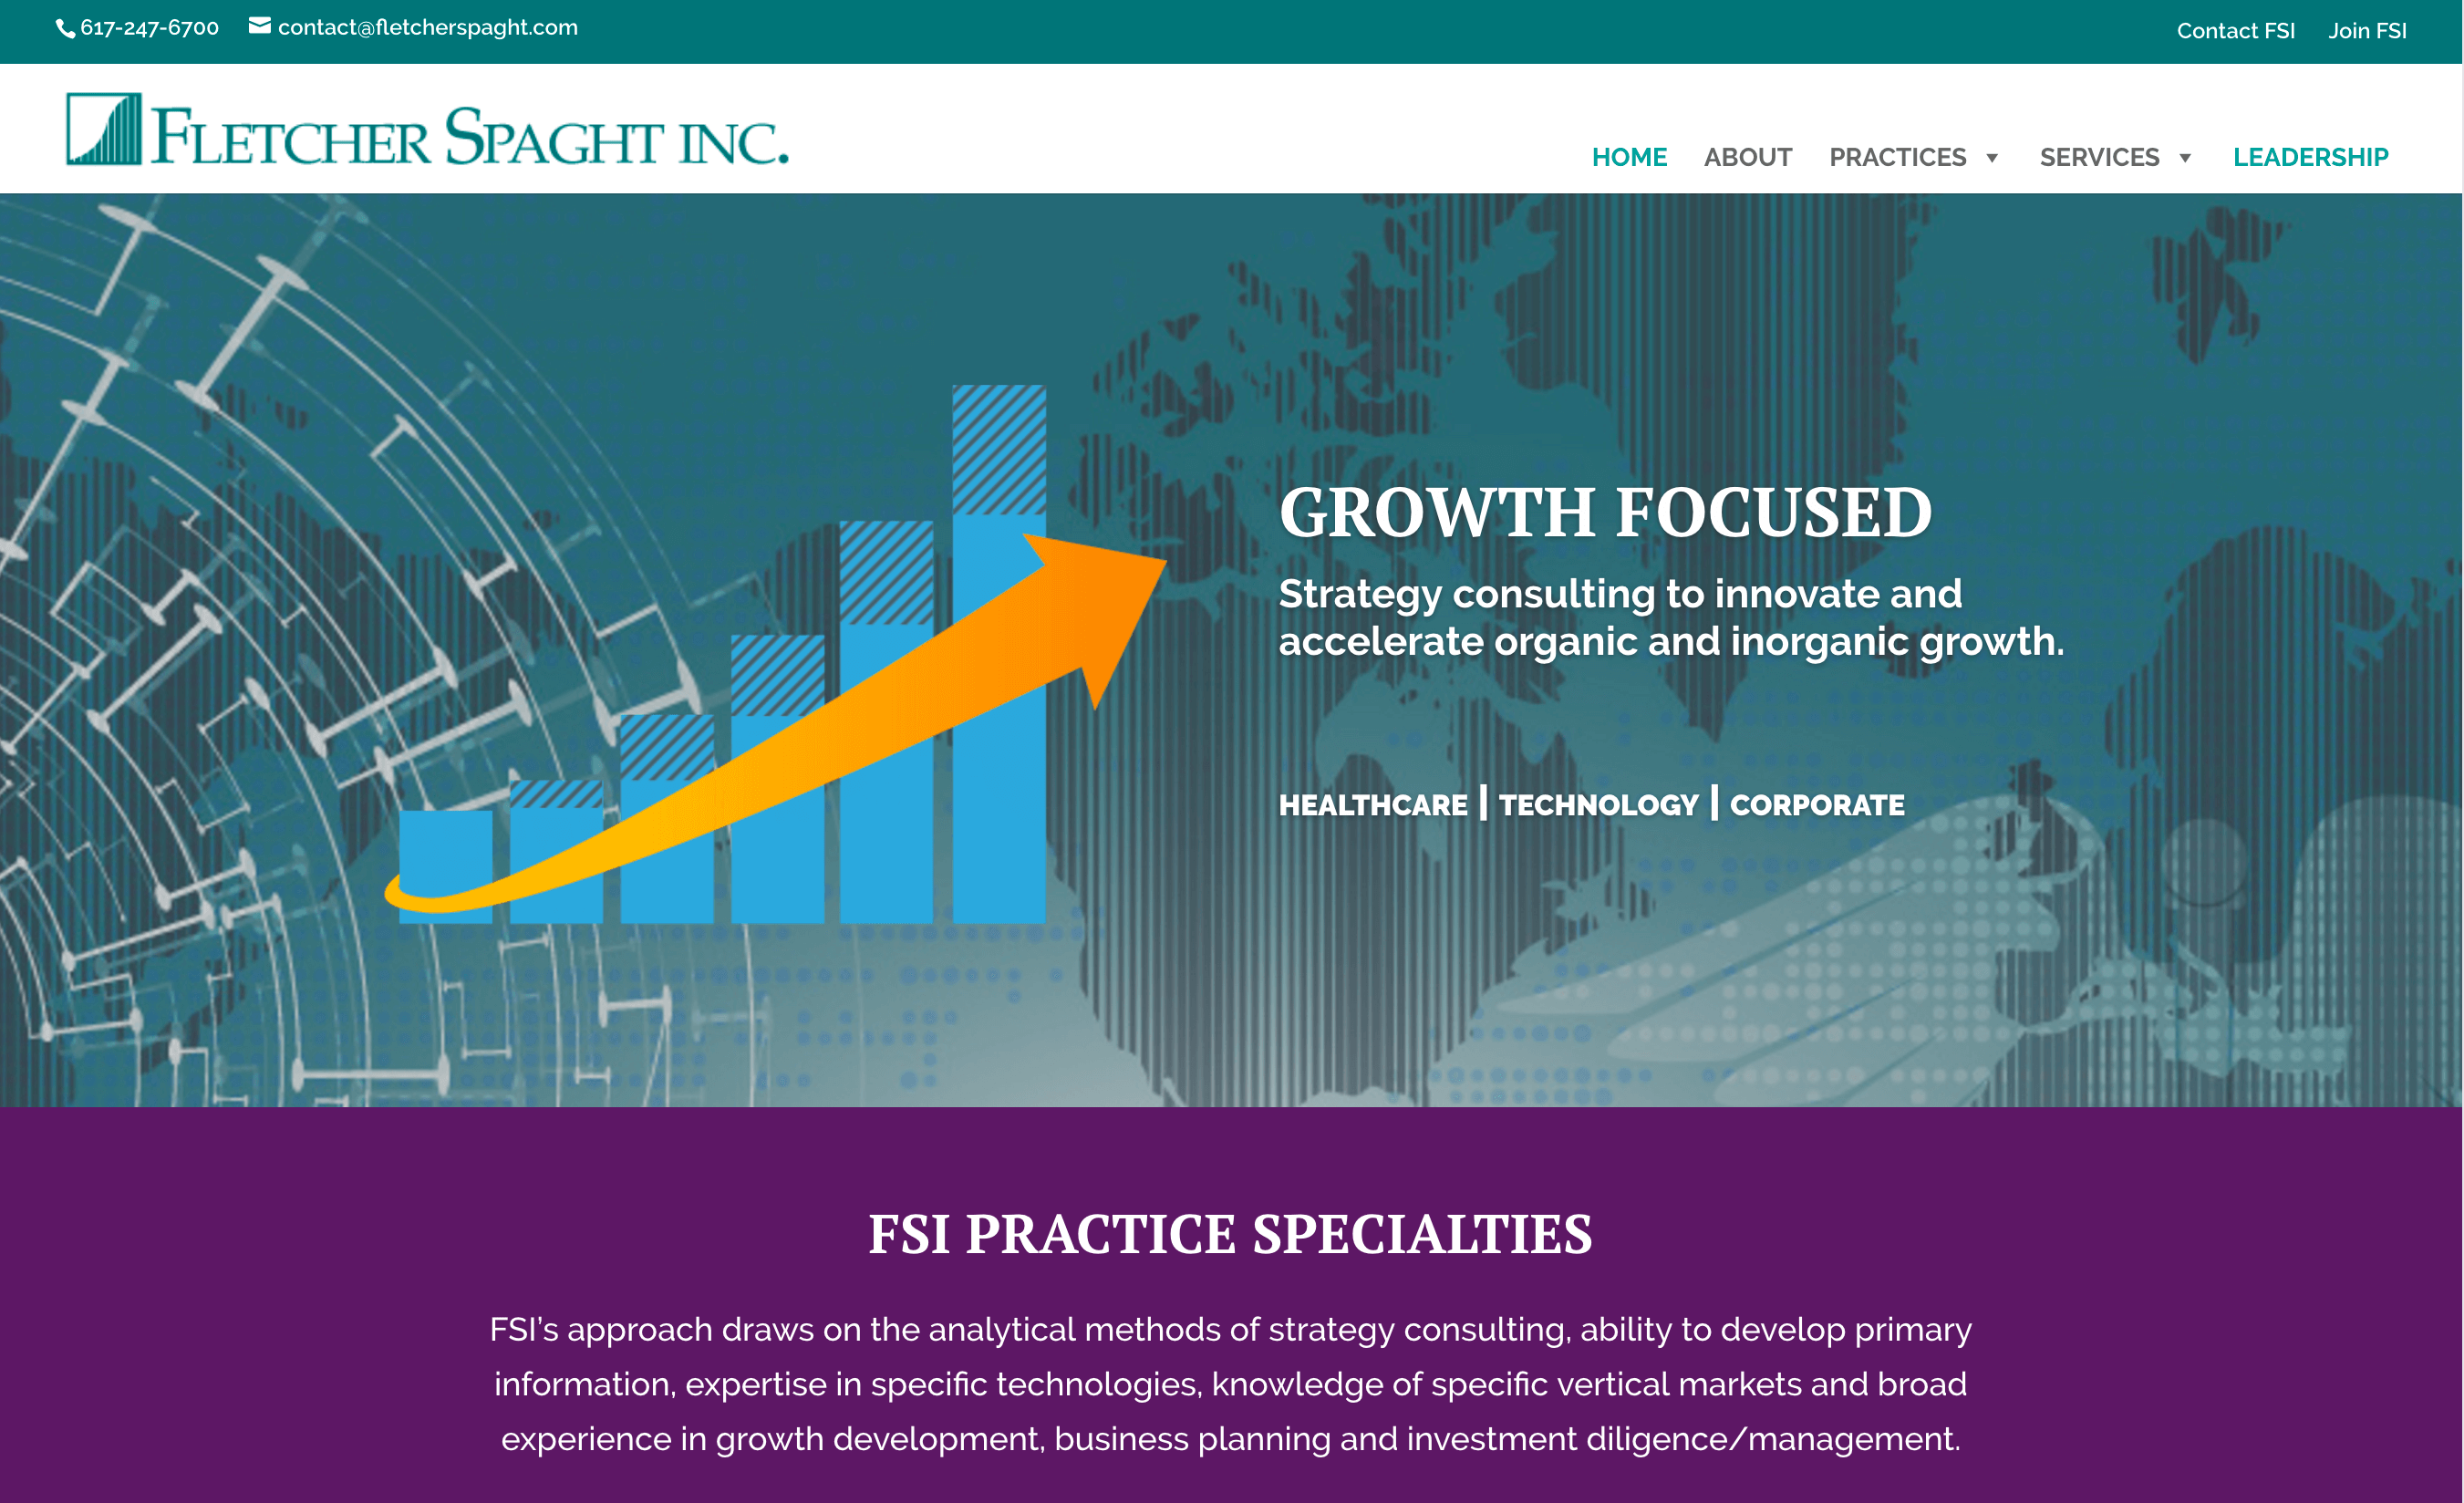 A new website is the centerpiece of Fletcher Spaght's new branding and digital strategy.